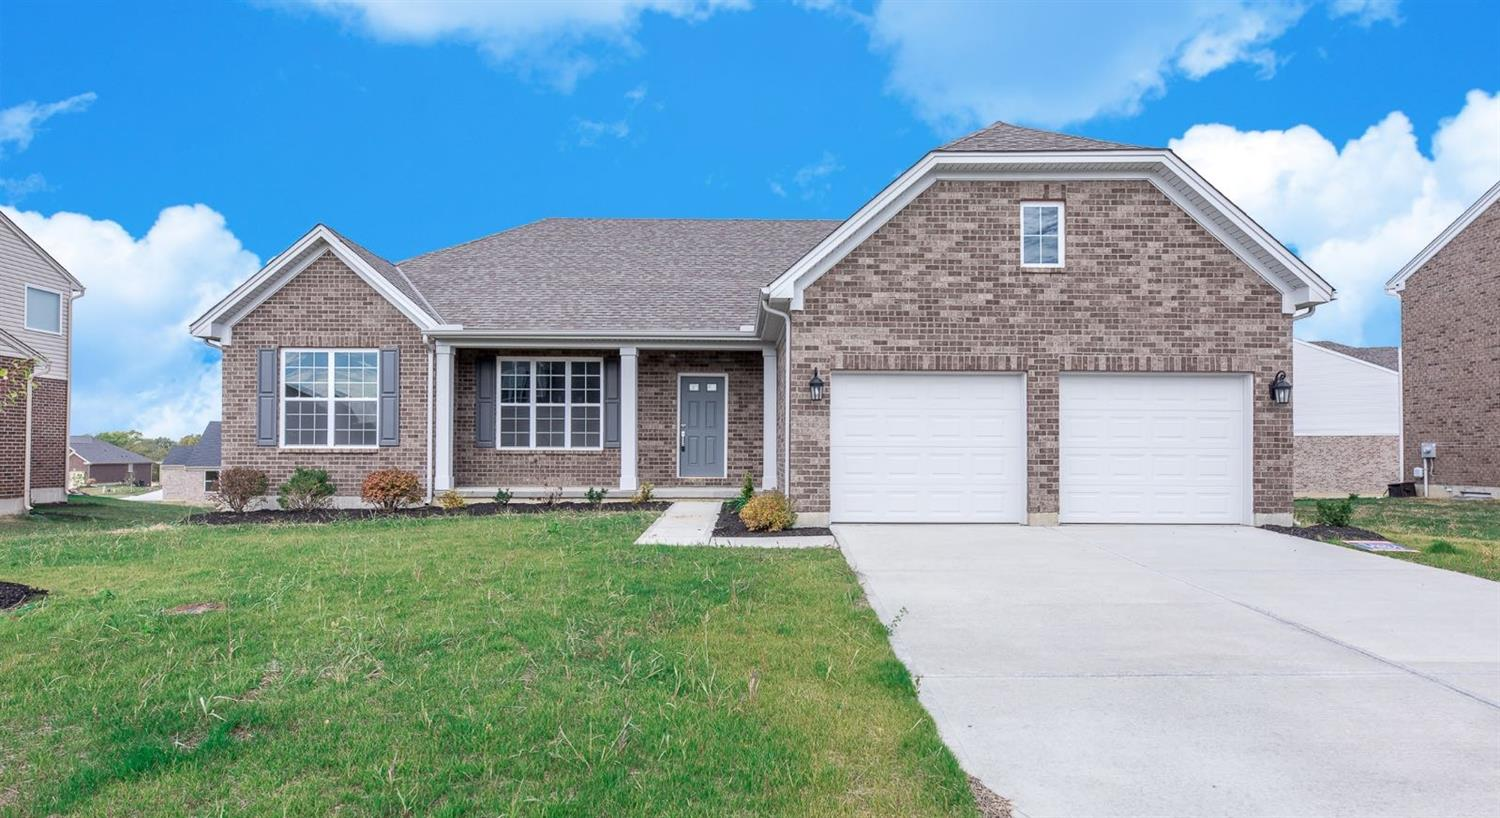 Property for sale at 5370 Mariners Way, Liberty Twp,  Ohio 45011